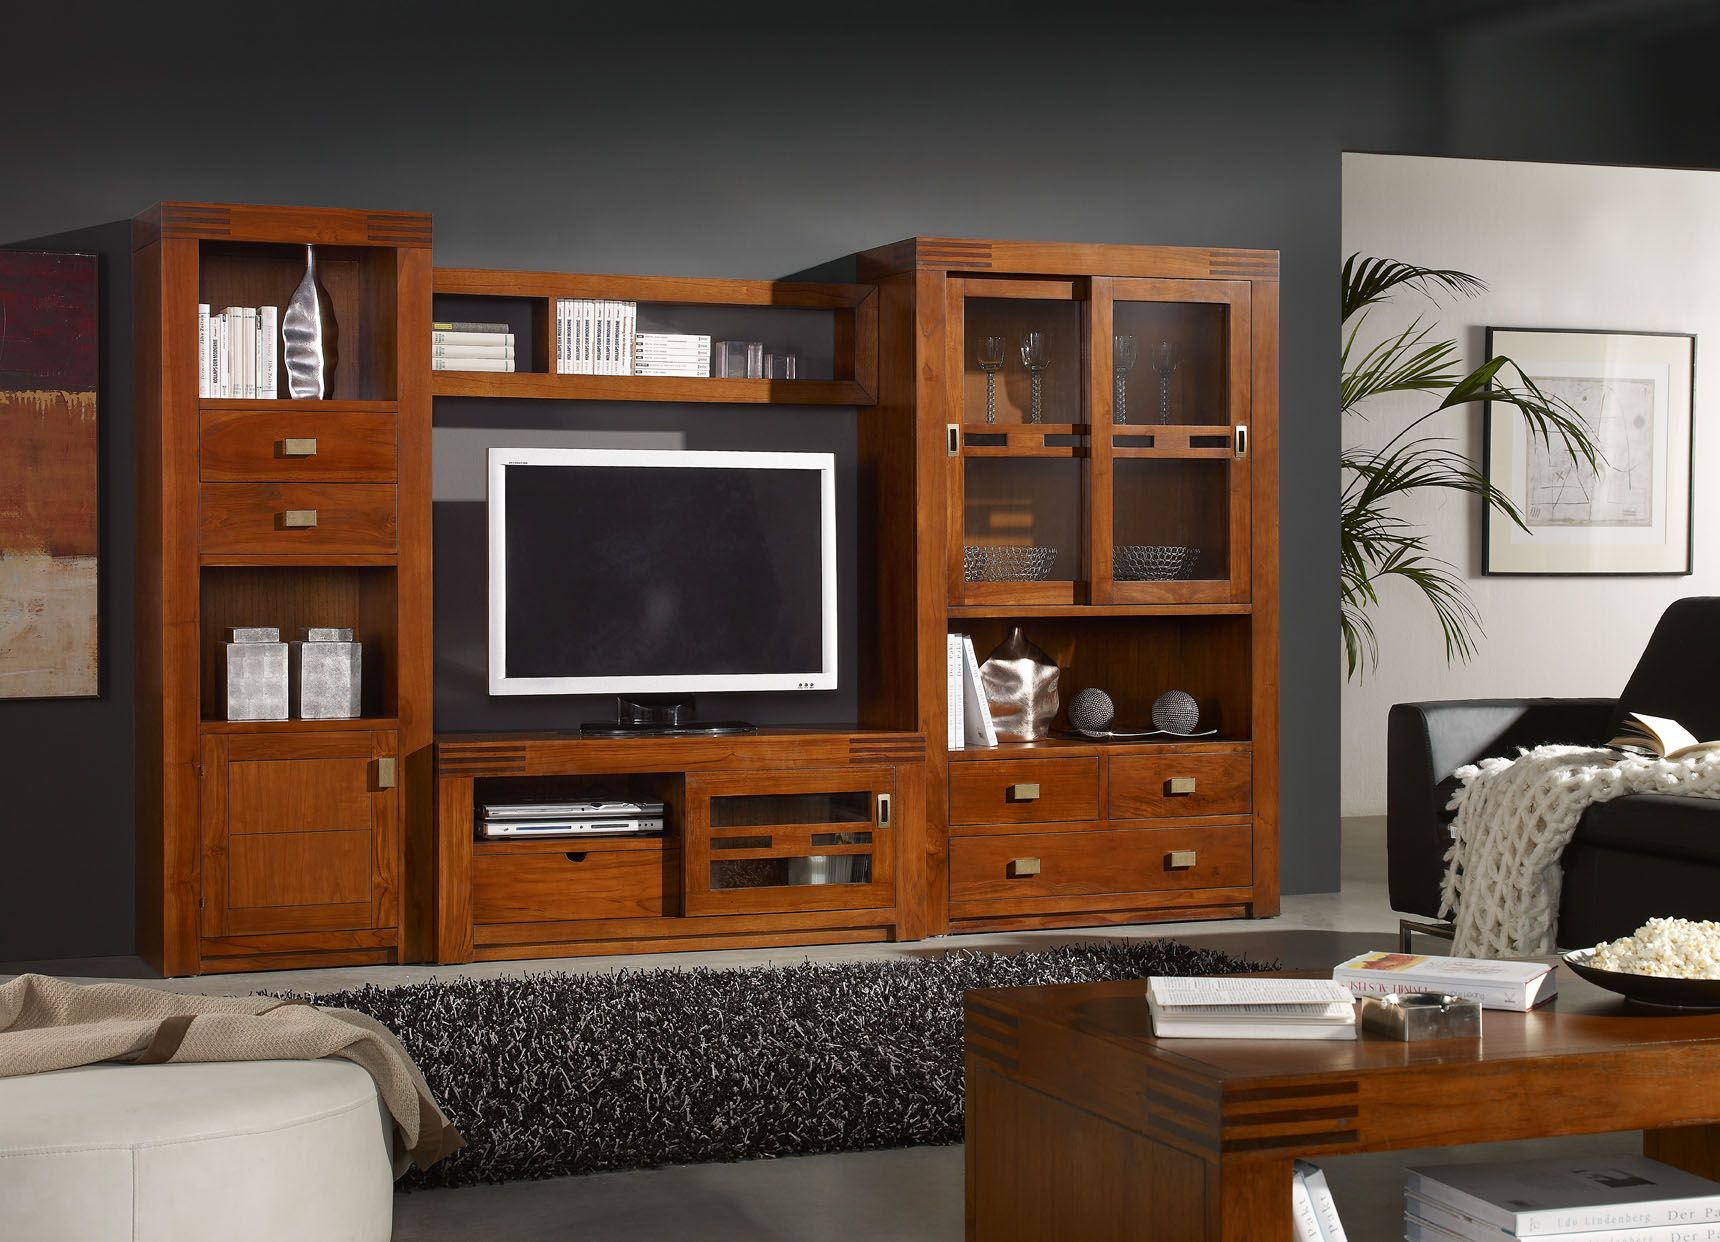 Mueble Colonial Moderno Modular Colonial Serie Wood Ceibo In 2019 Salones Coloniales